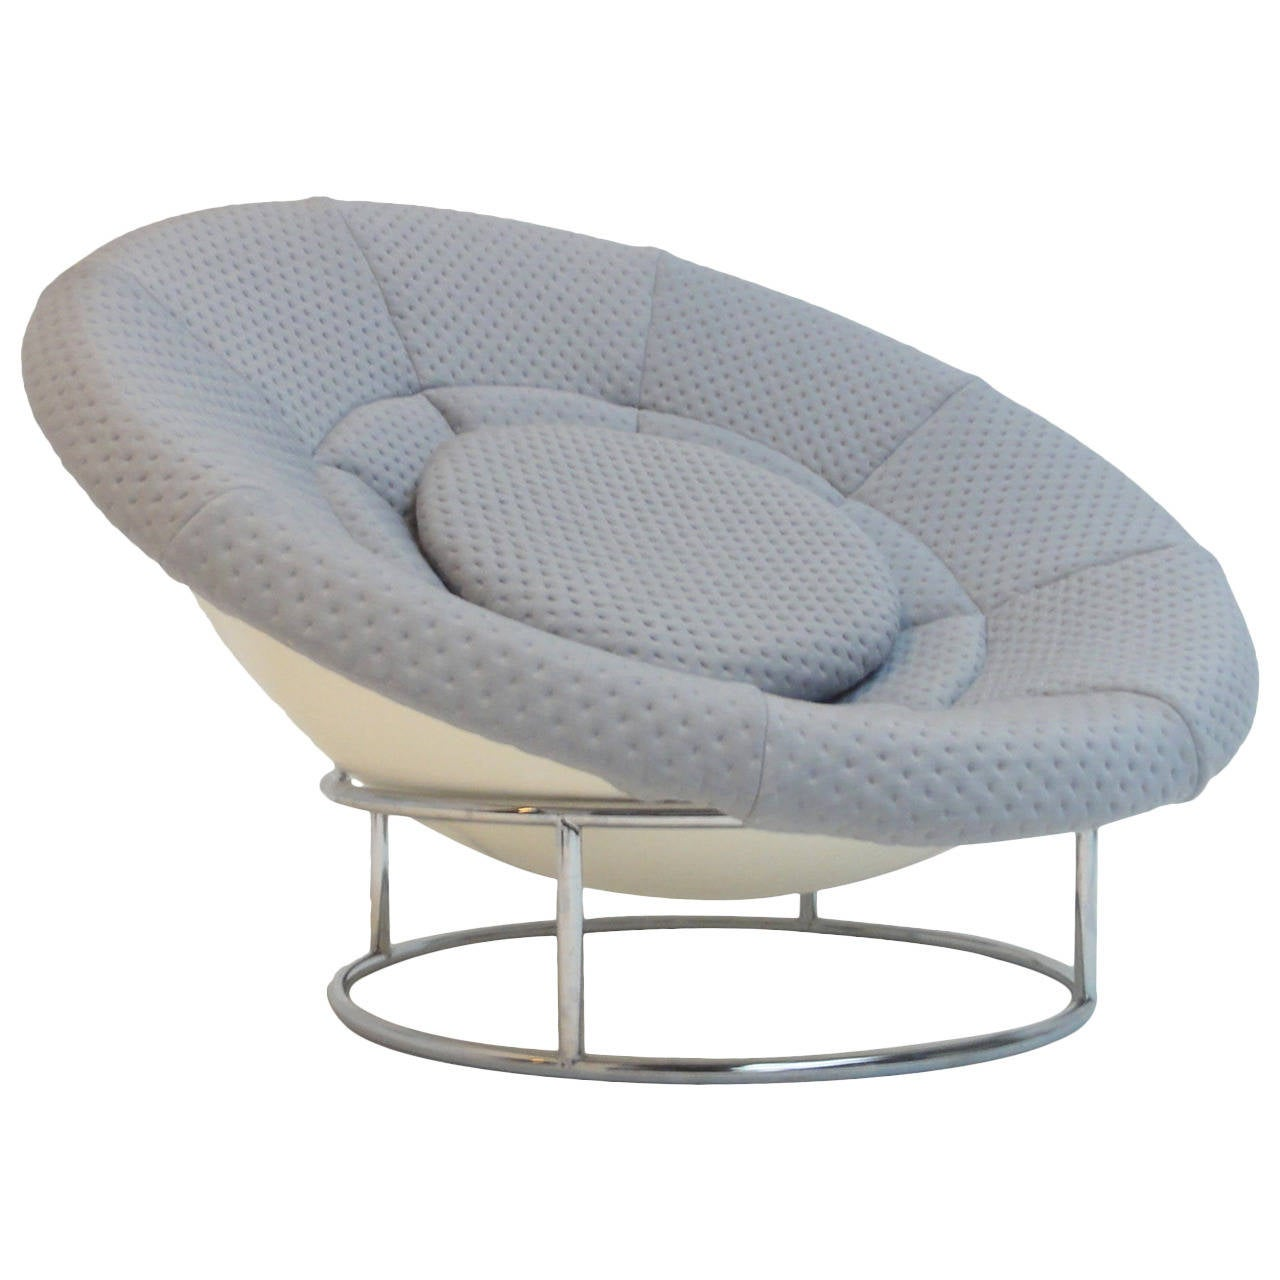 1970s 'Bird's Nest' Verner Panton Style Lounge Chair For Sale